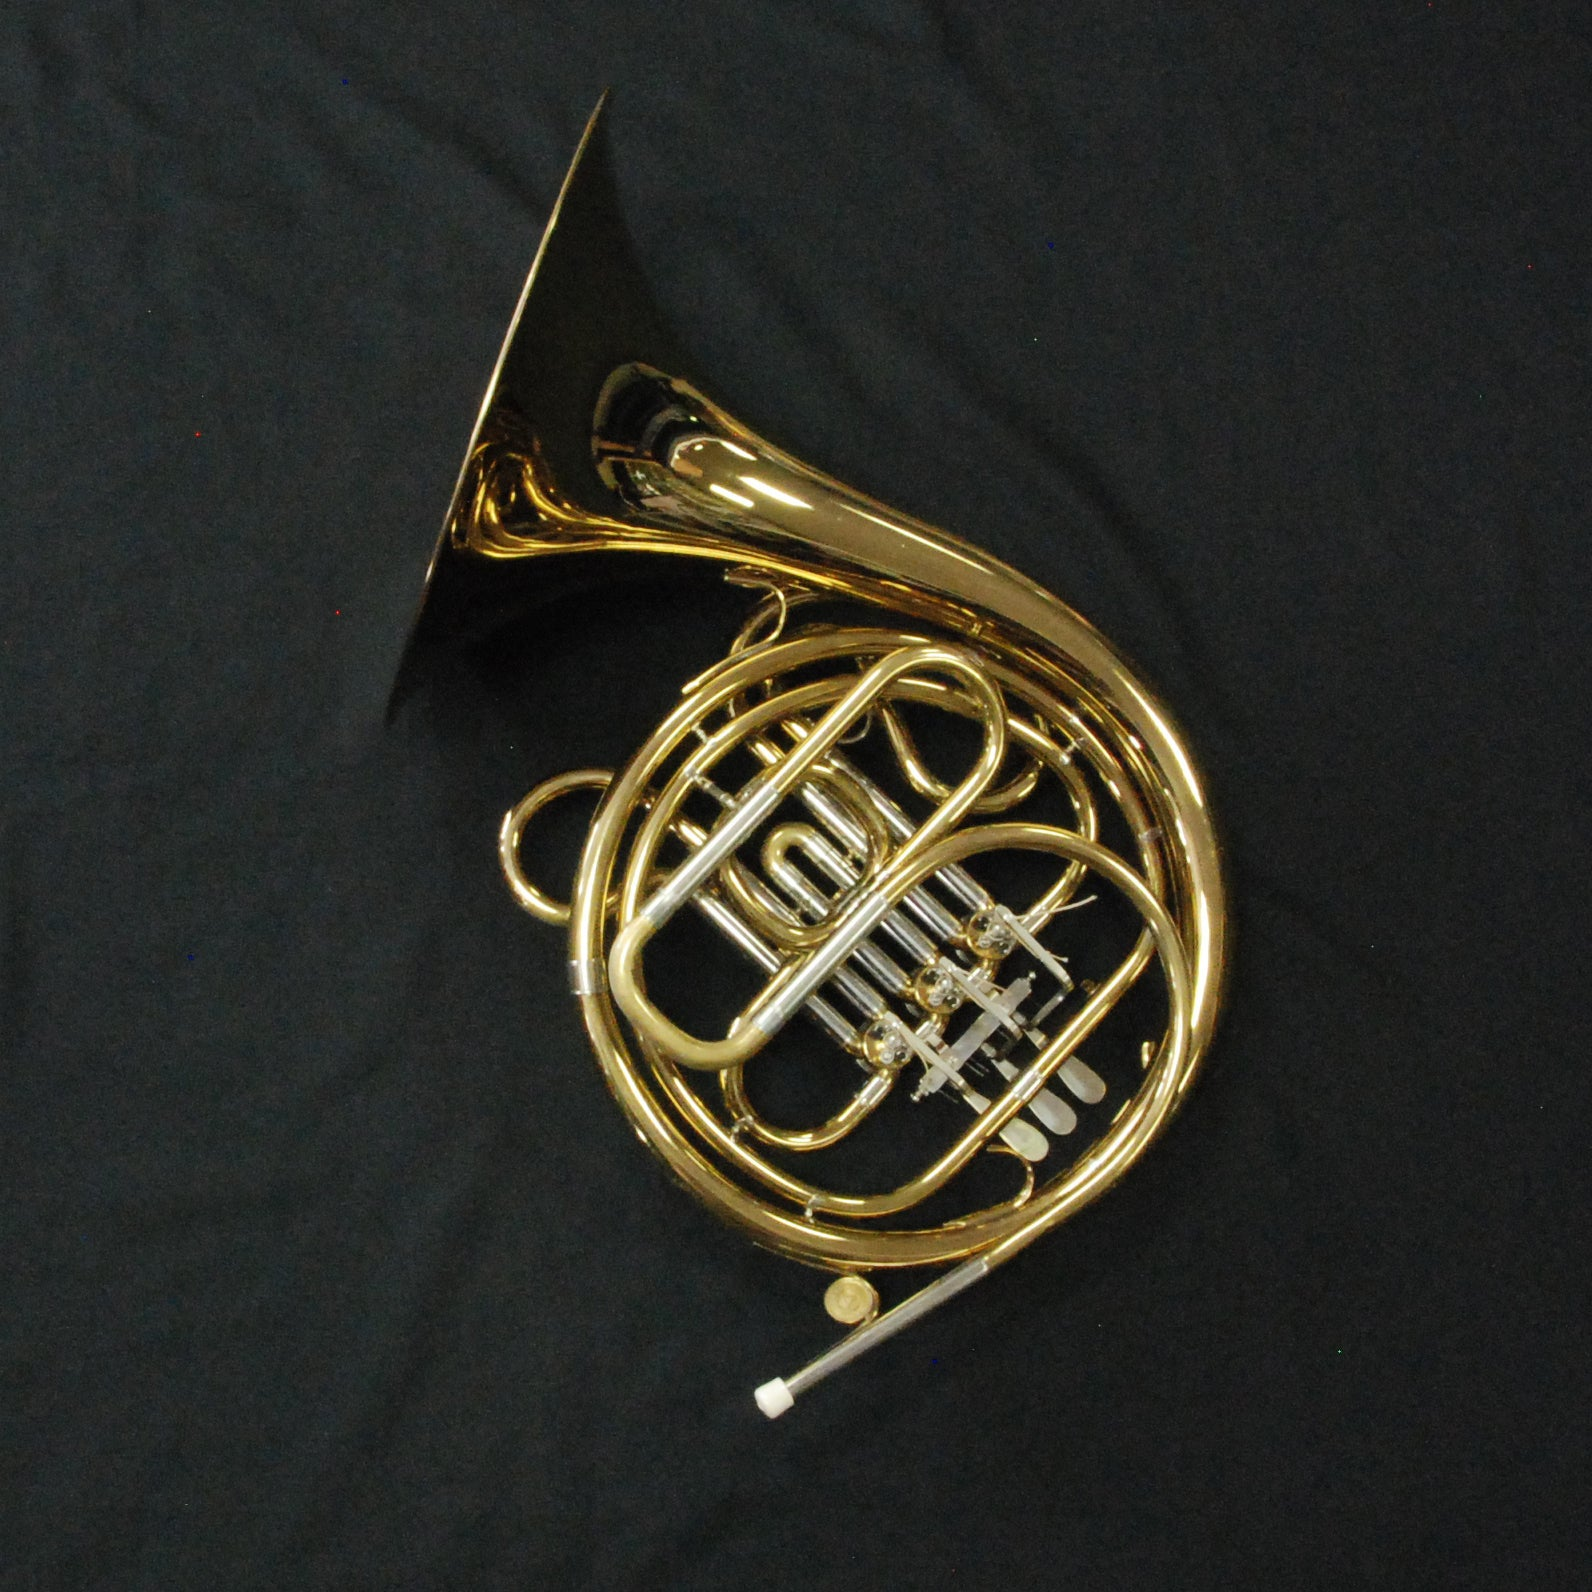 Shop online for Holton H602 French Horn today.  Now available for purchase from Midlothian Music of Orland Park, Illinois, USA